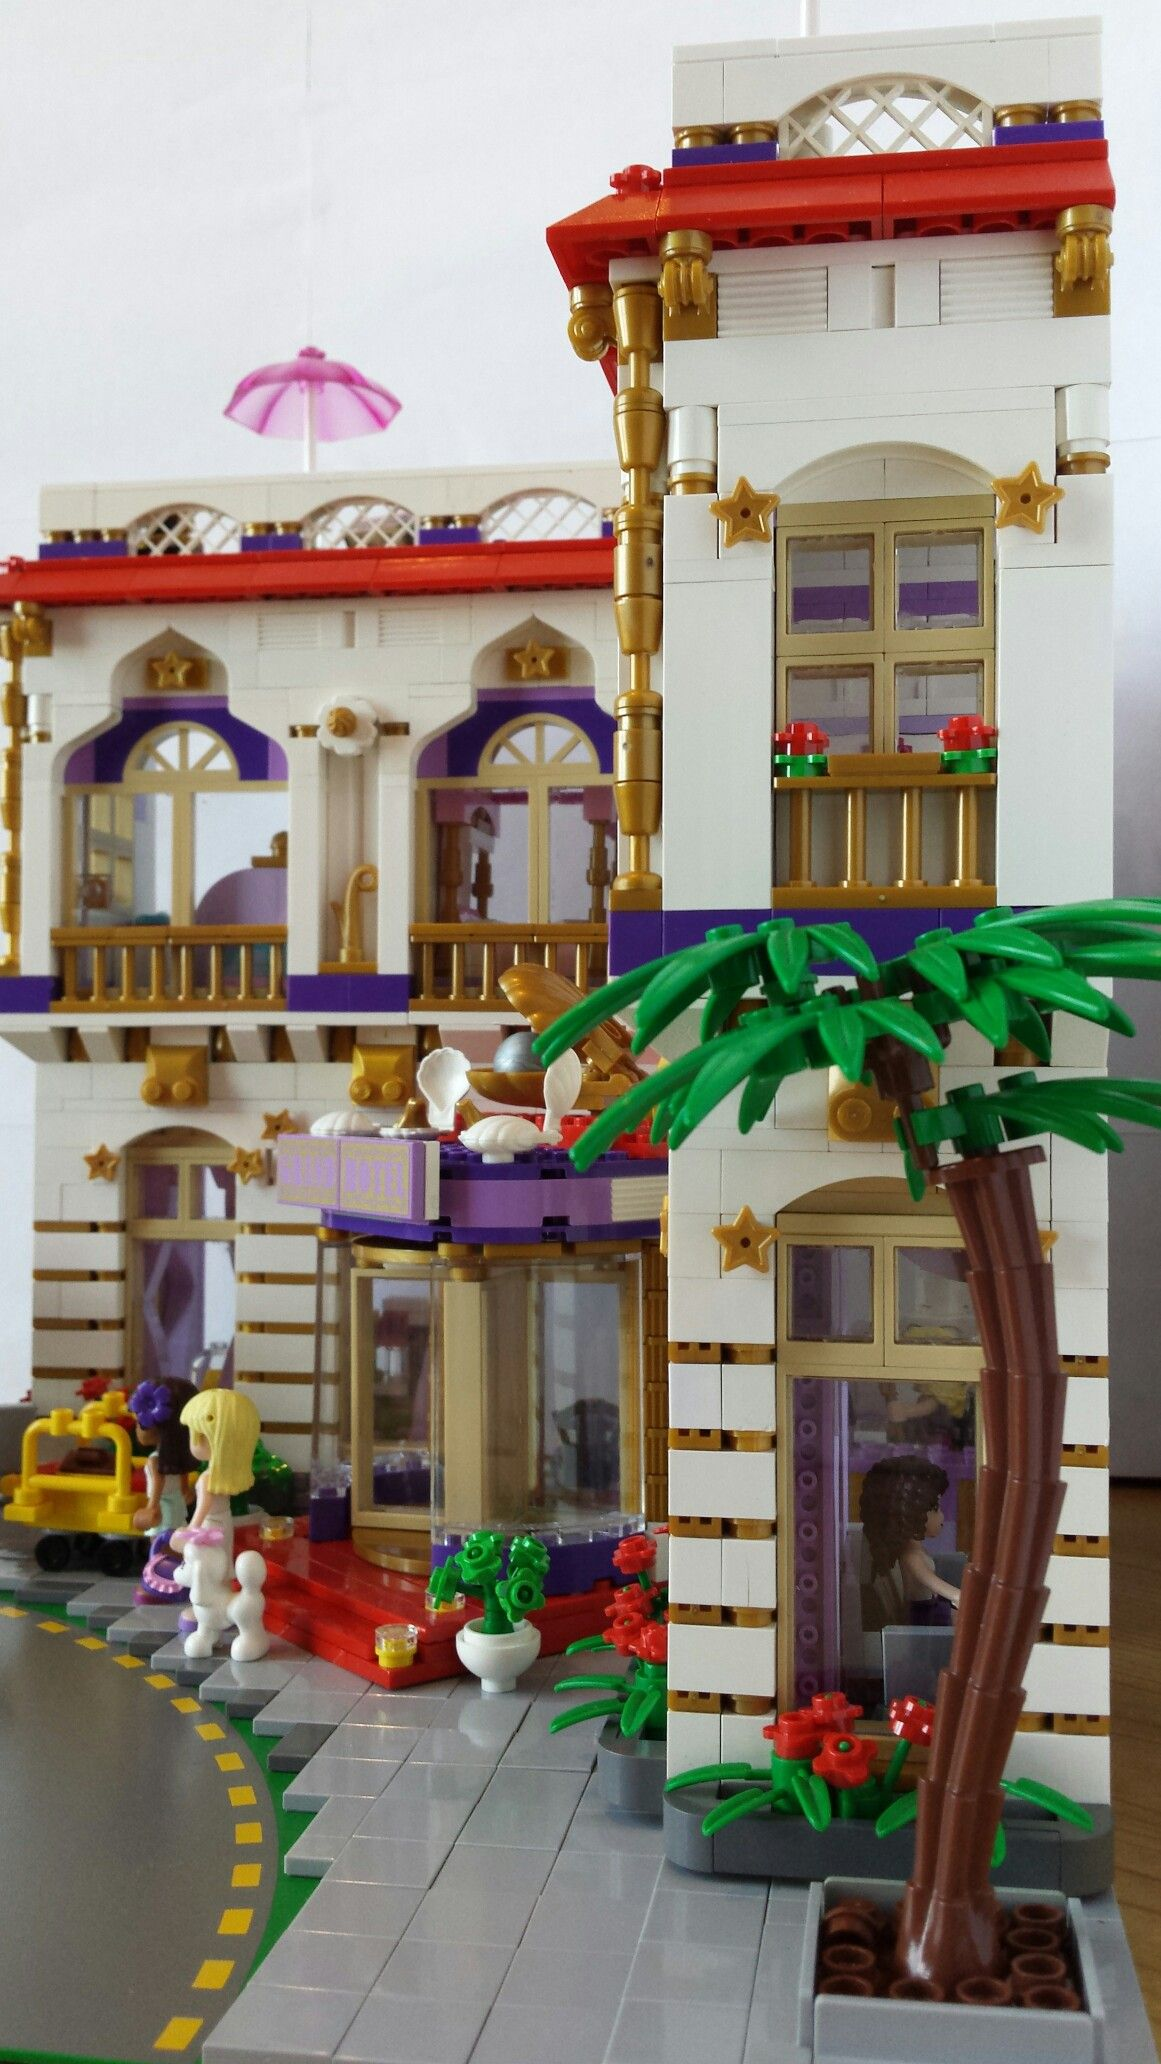 Lego Friends Hotel Grand Pearl Inspirered On Lego 41101 Lego Friends Sets Lego Friends Lego Hotel